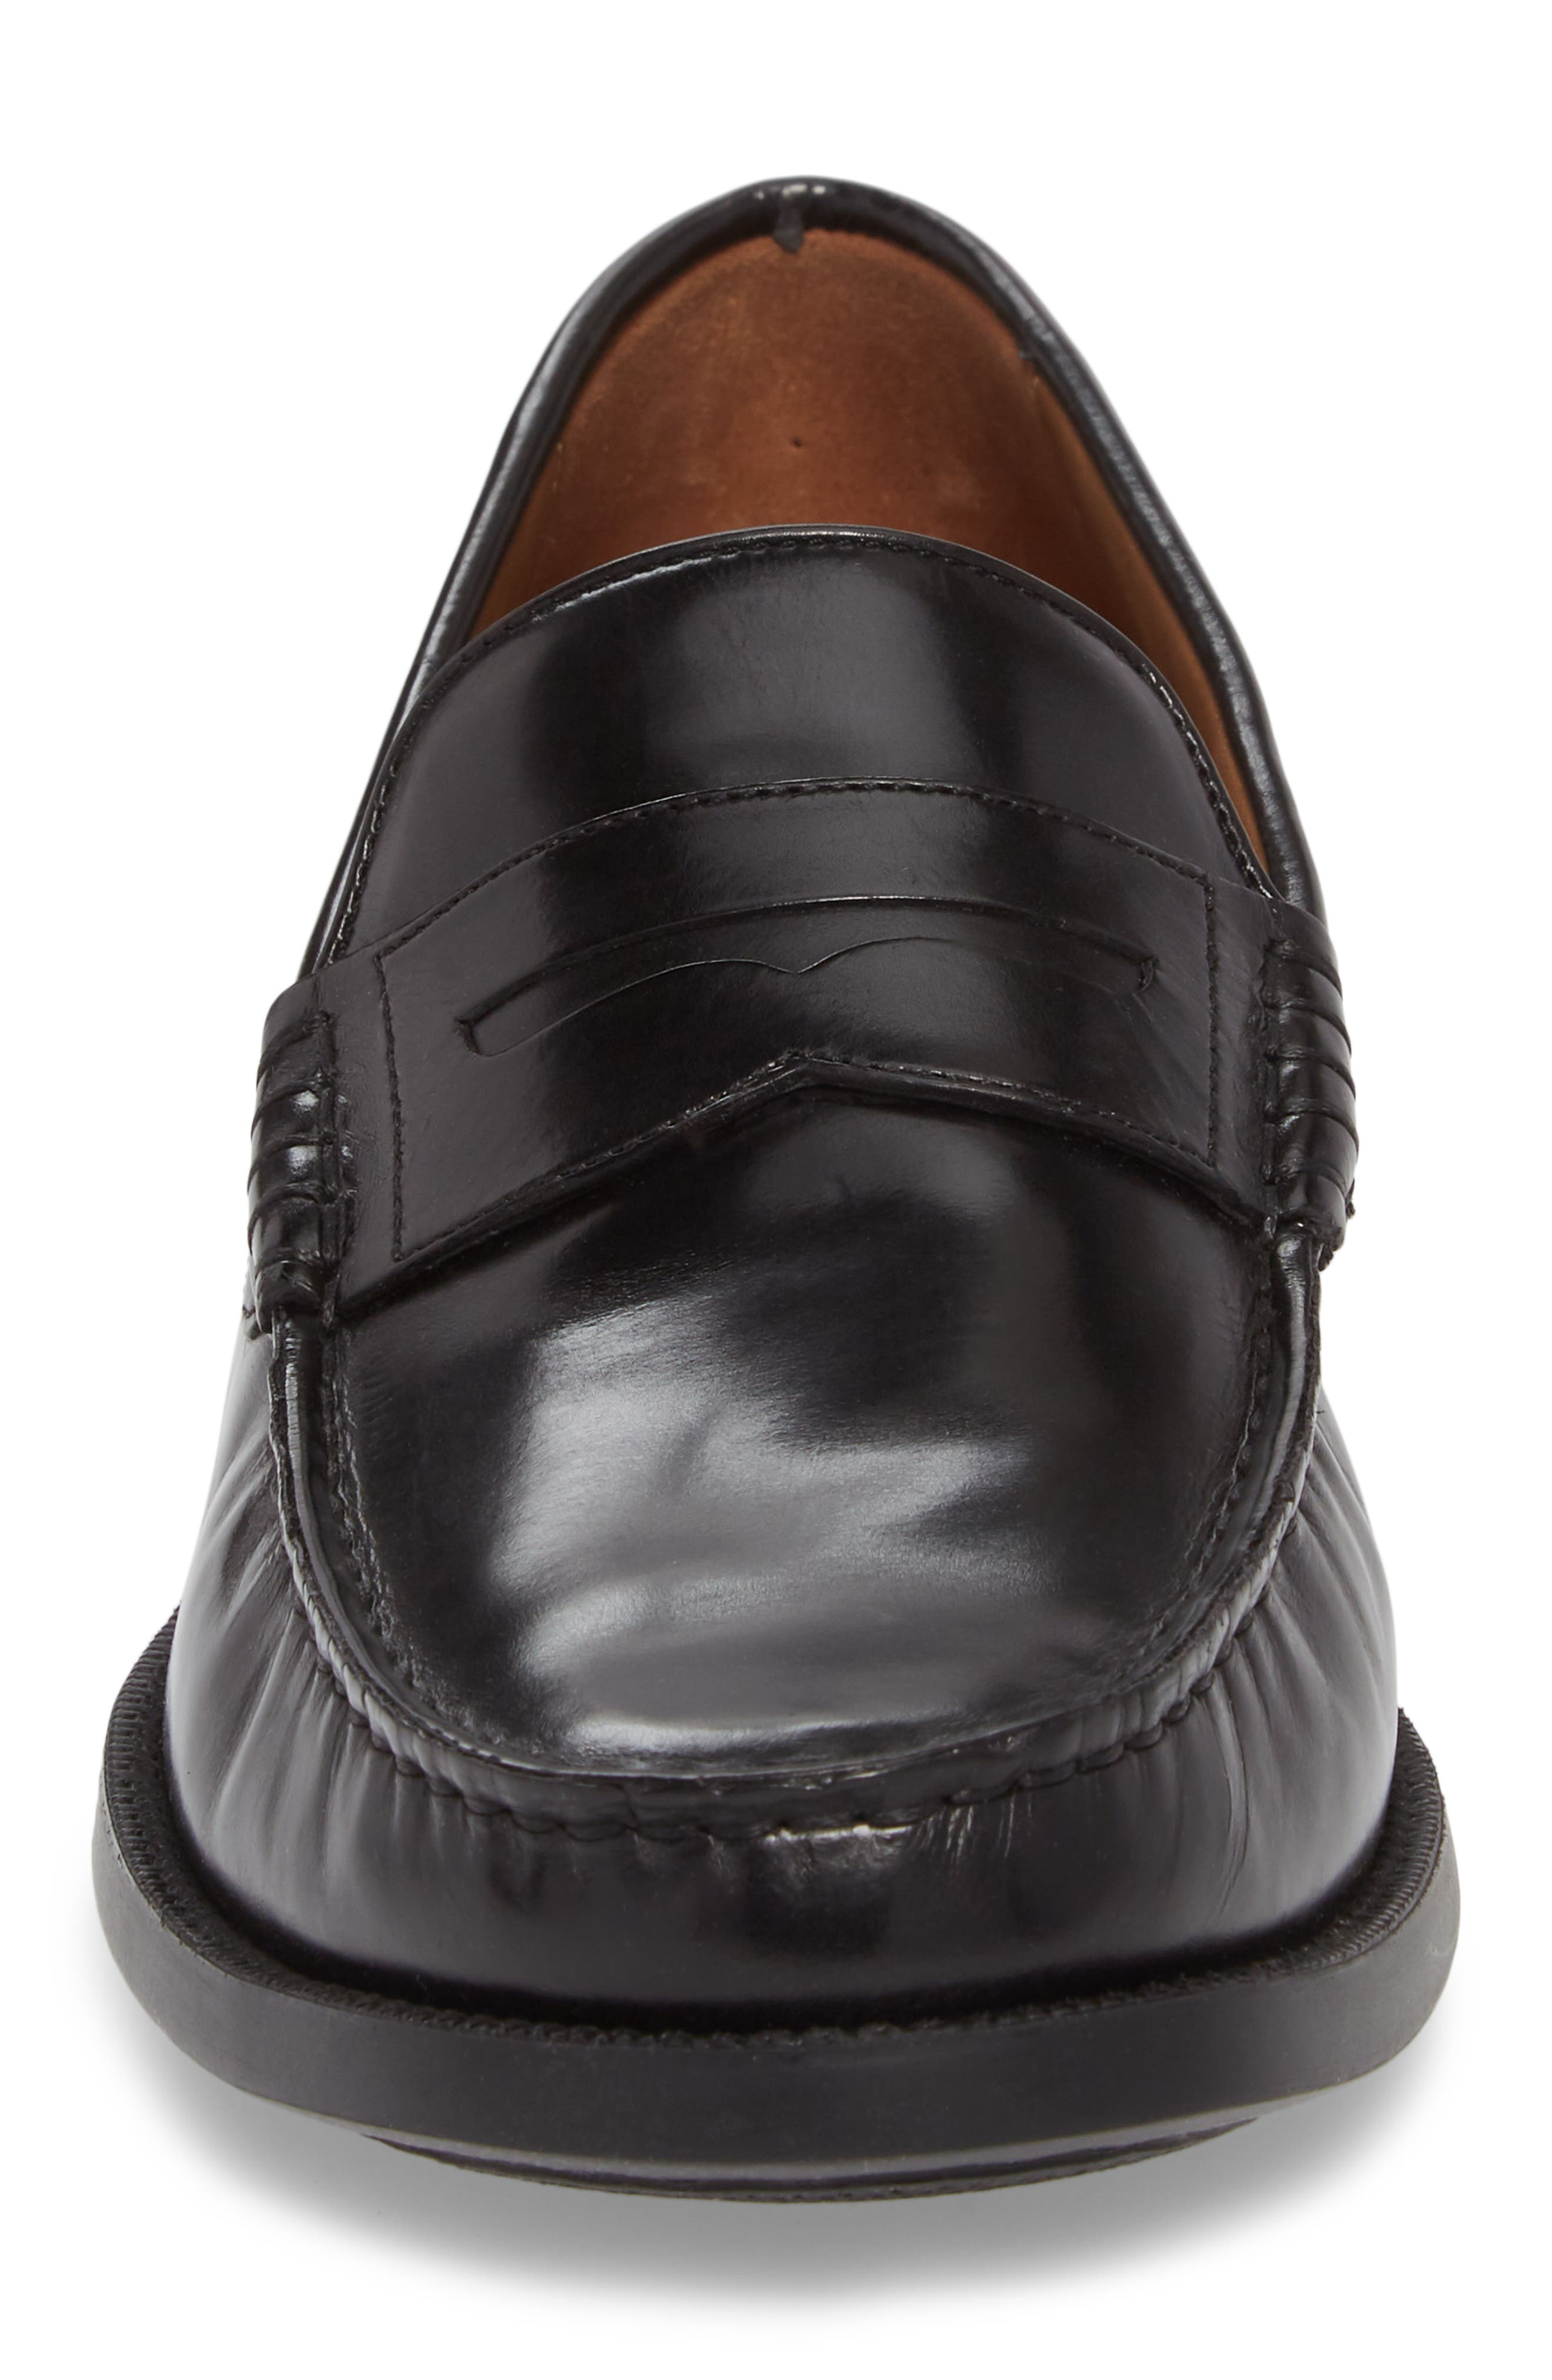 Chadwell Penny Loafer,                             Alternate thumbnail 4, color,                             BLACK LEATHER